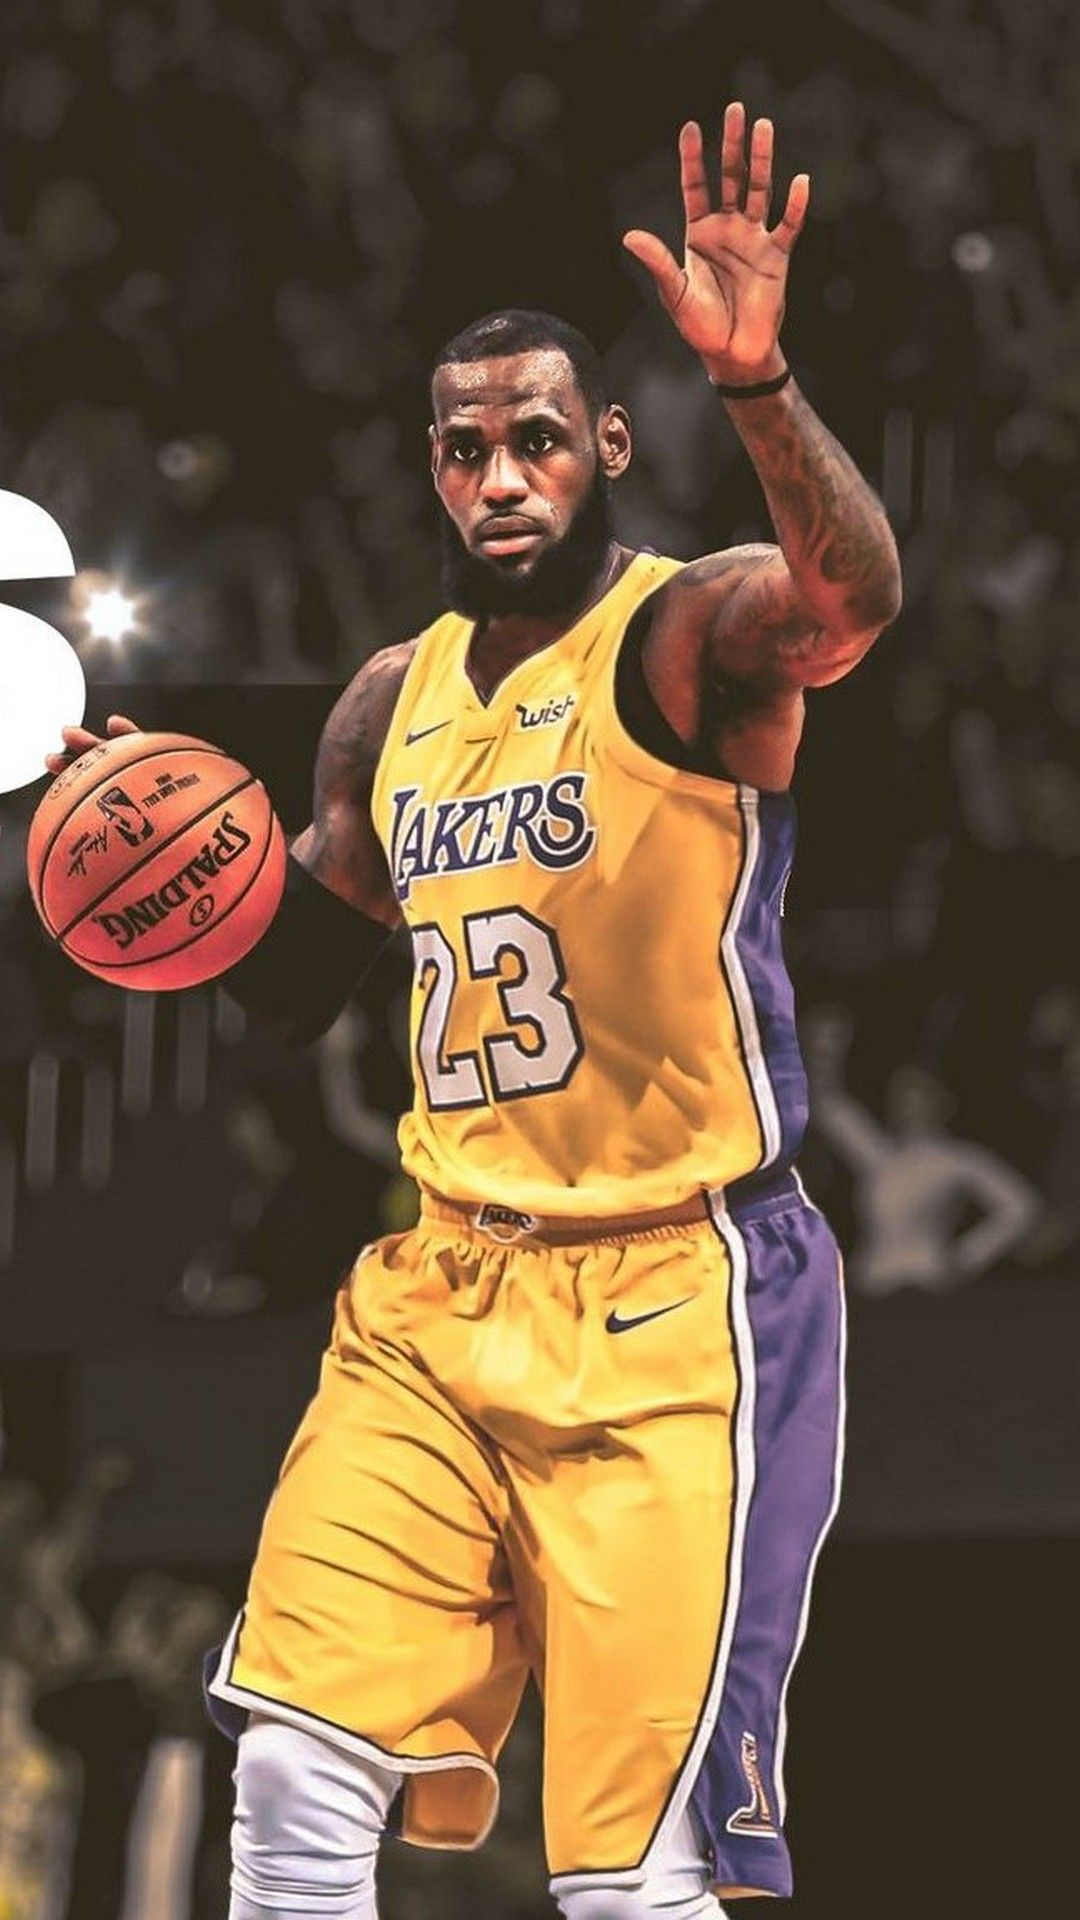 Lebron James Wallpaper Home Screen In 2020 Lebron James Wallpapers Nba Lebron James Lebron James